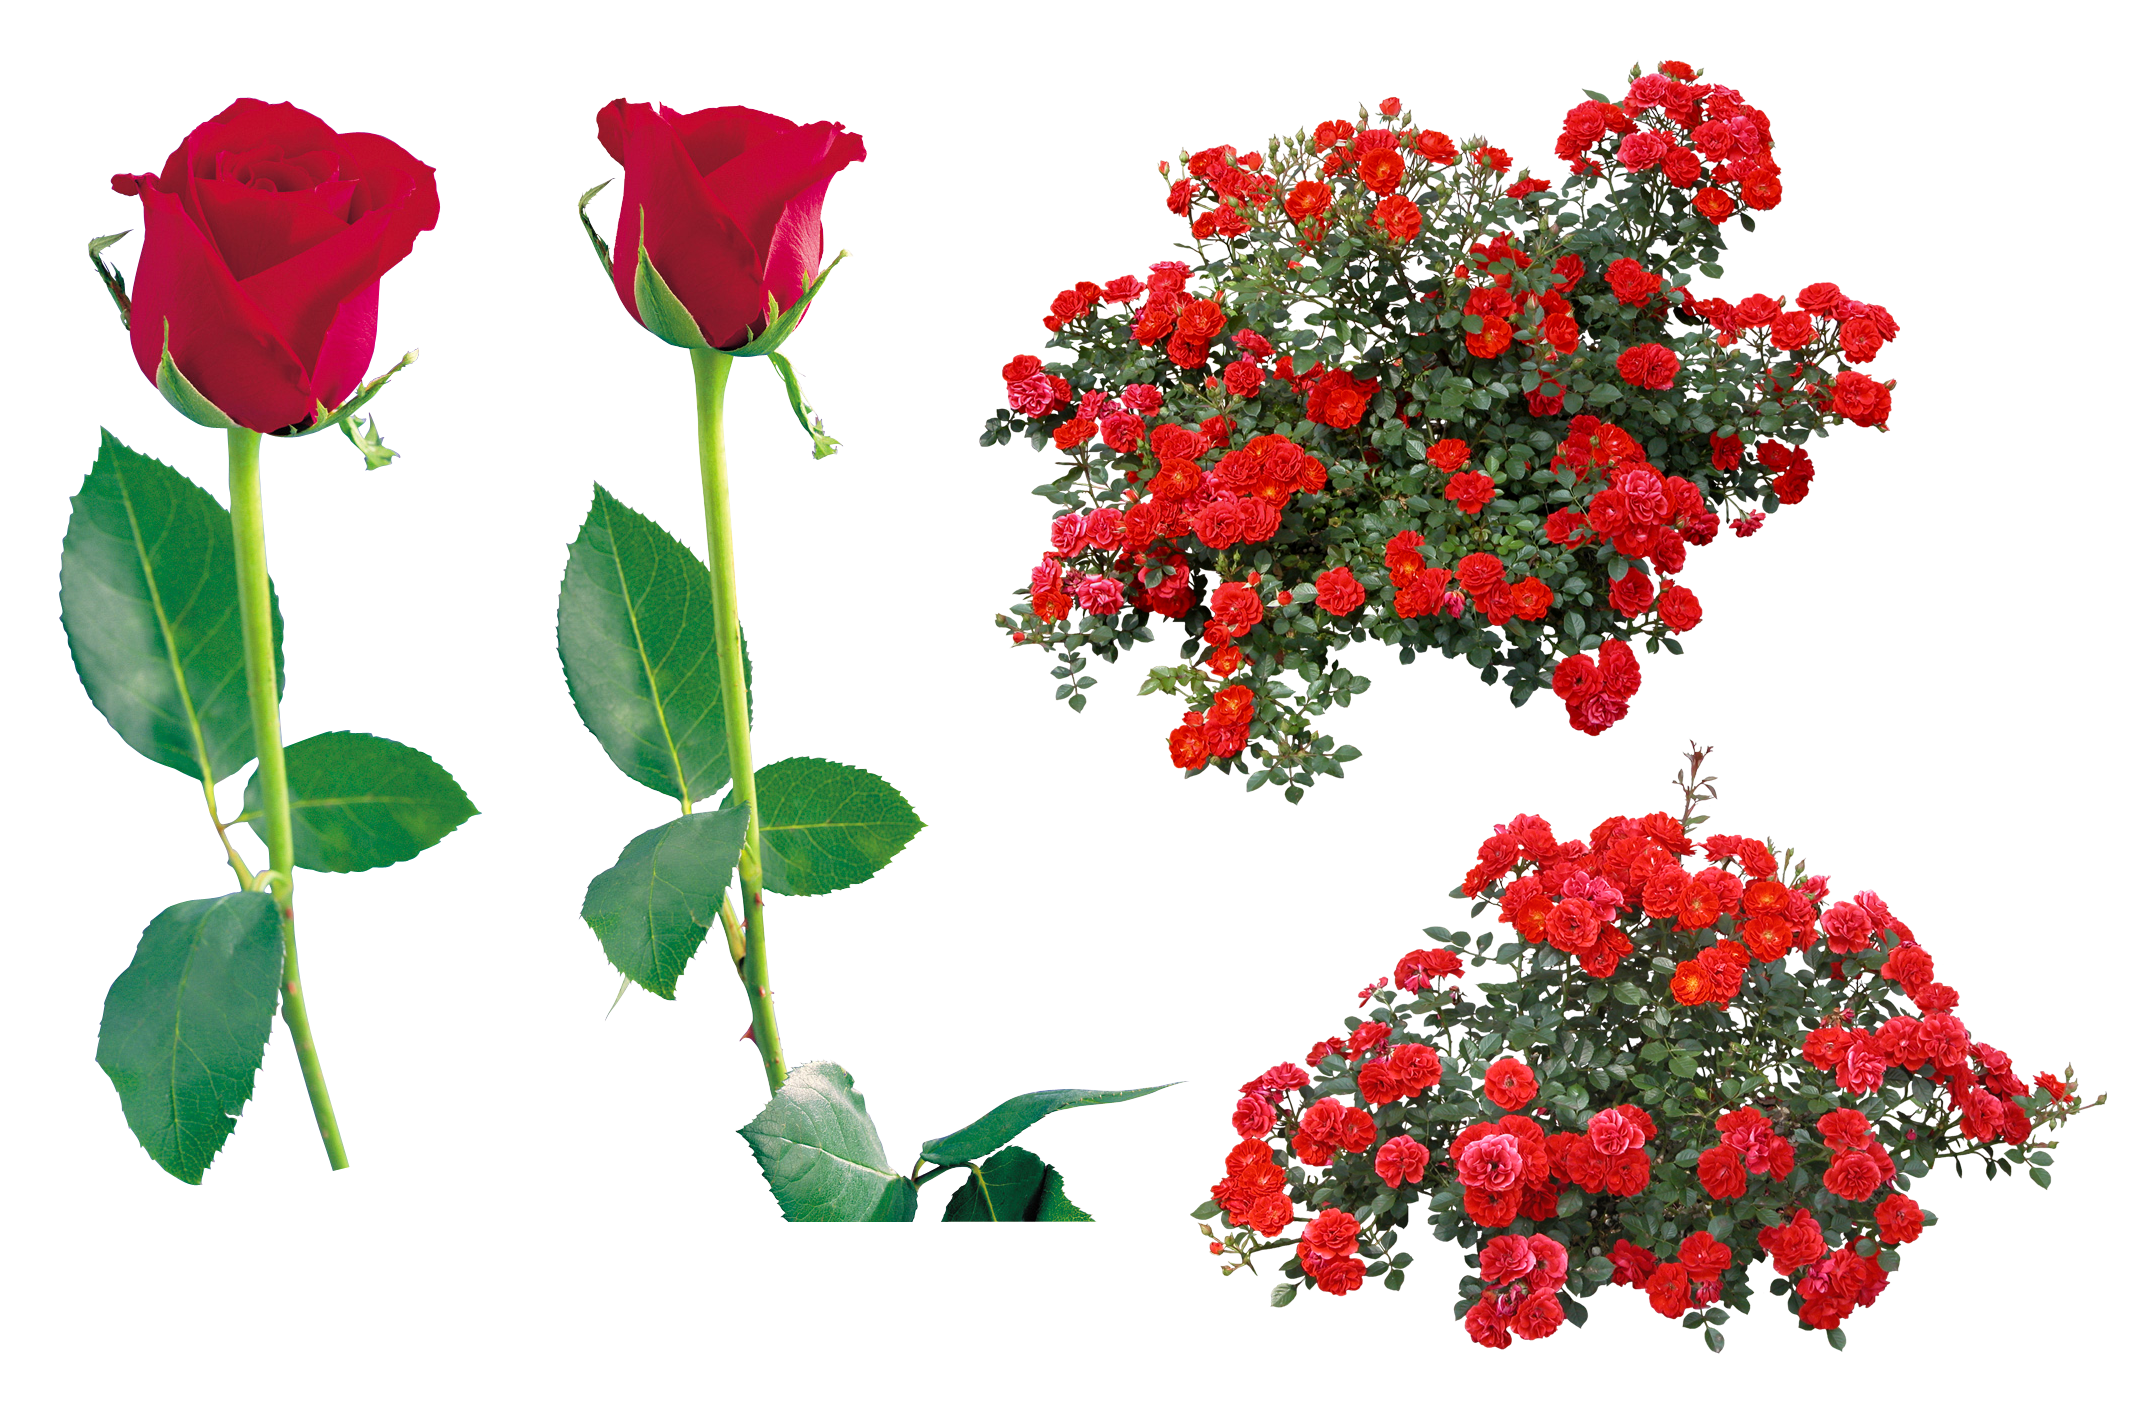 Rose flower images image. Png pictures free download graphic free download